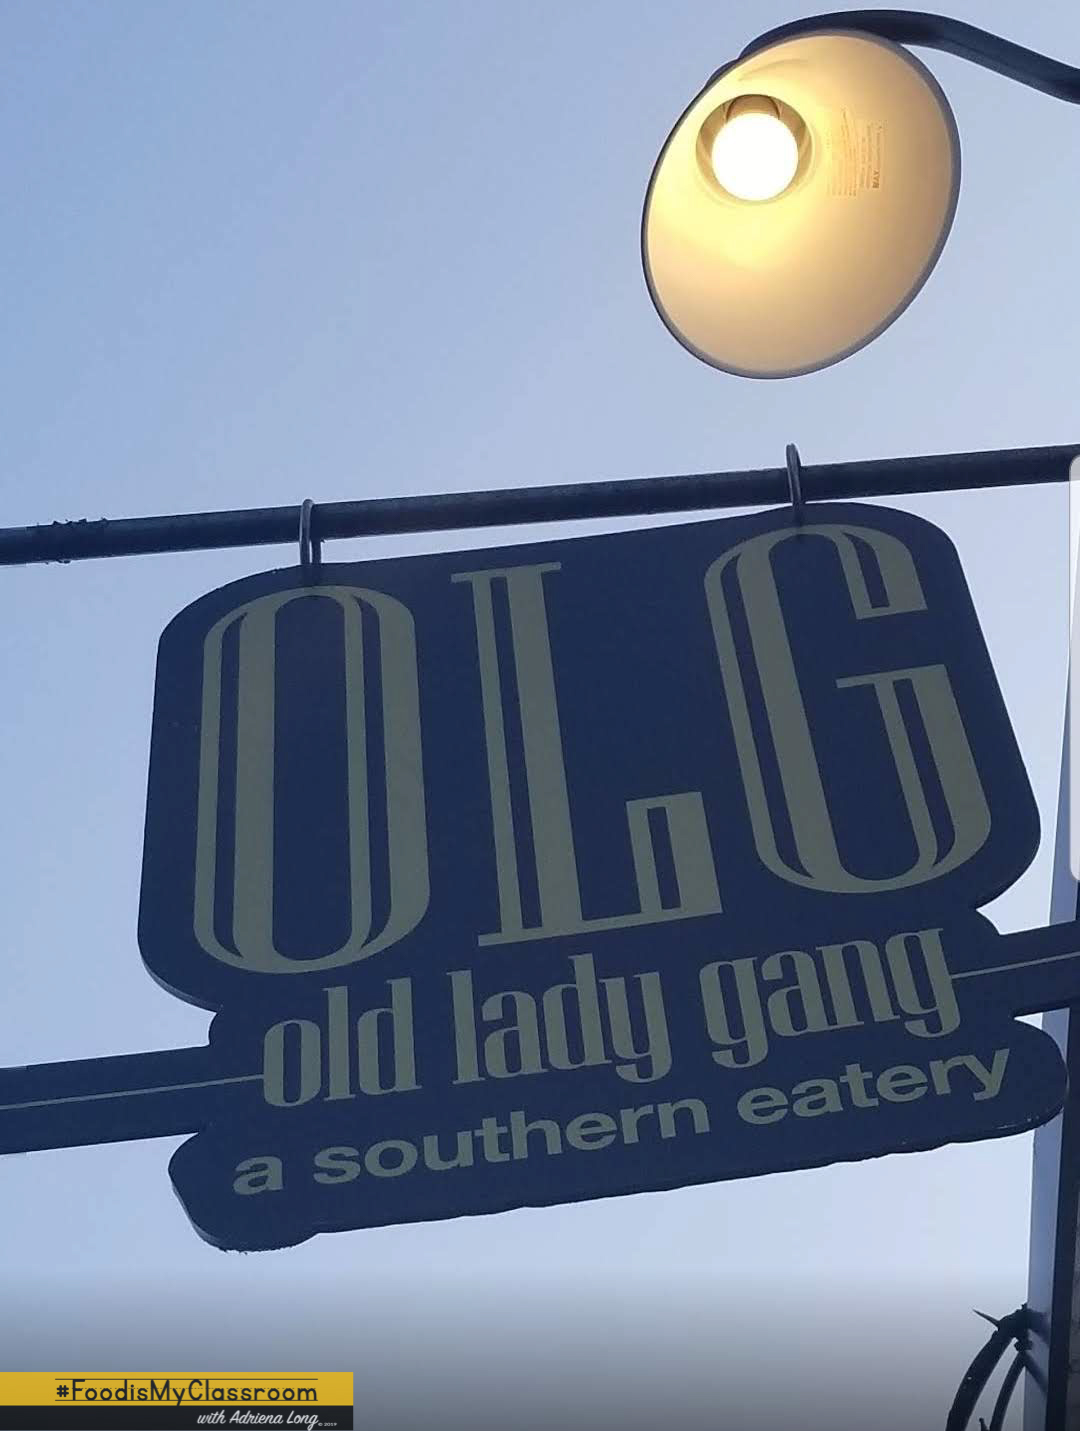 Old Lady Gang (OLG) Restaurant Review